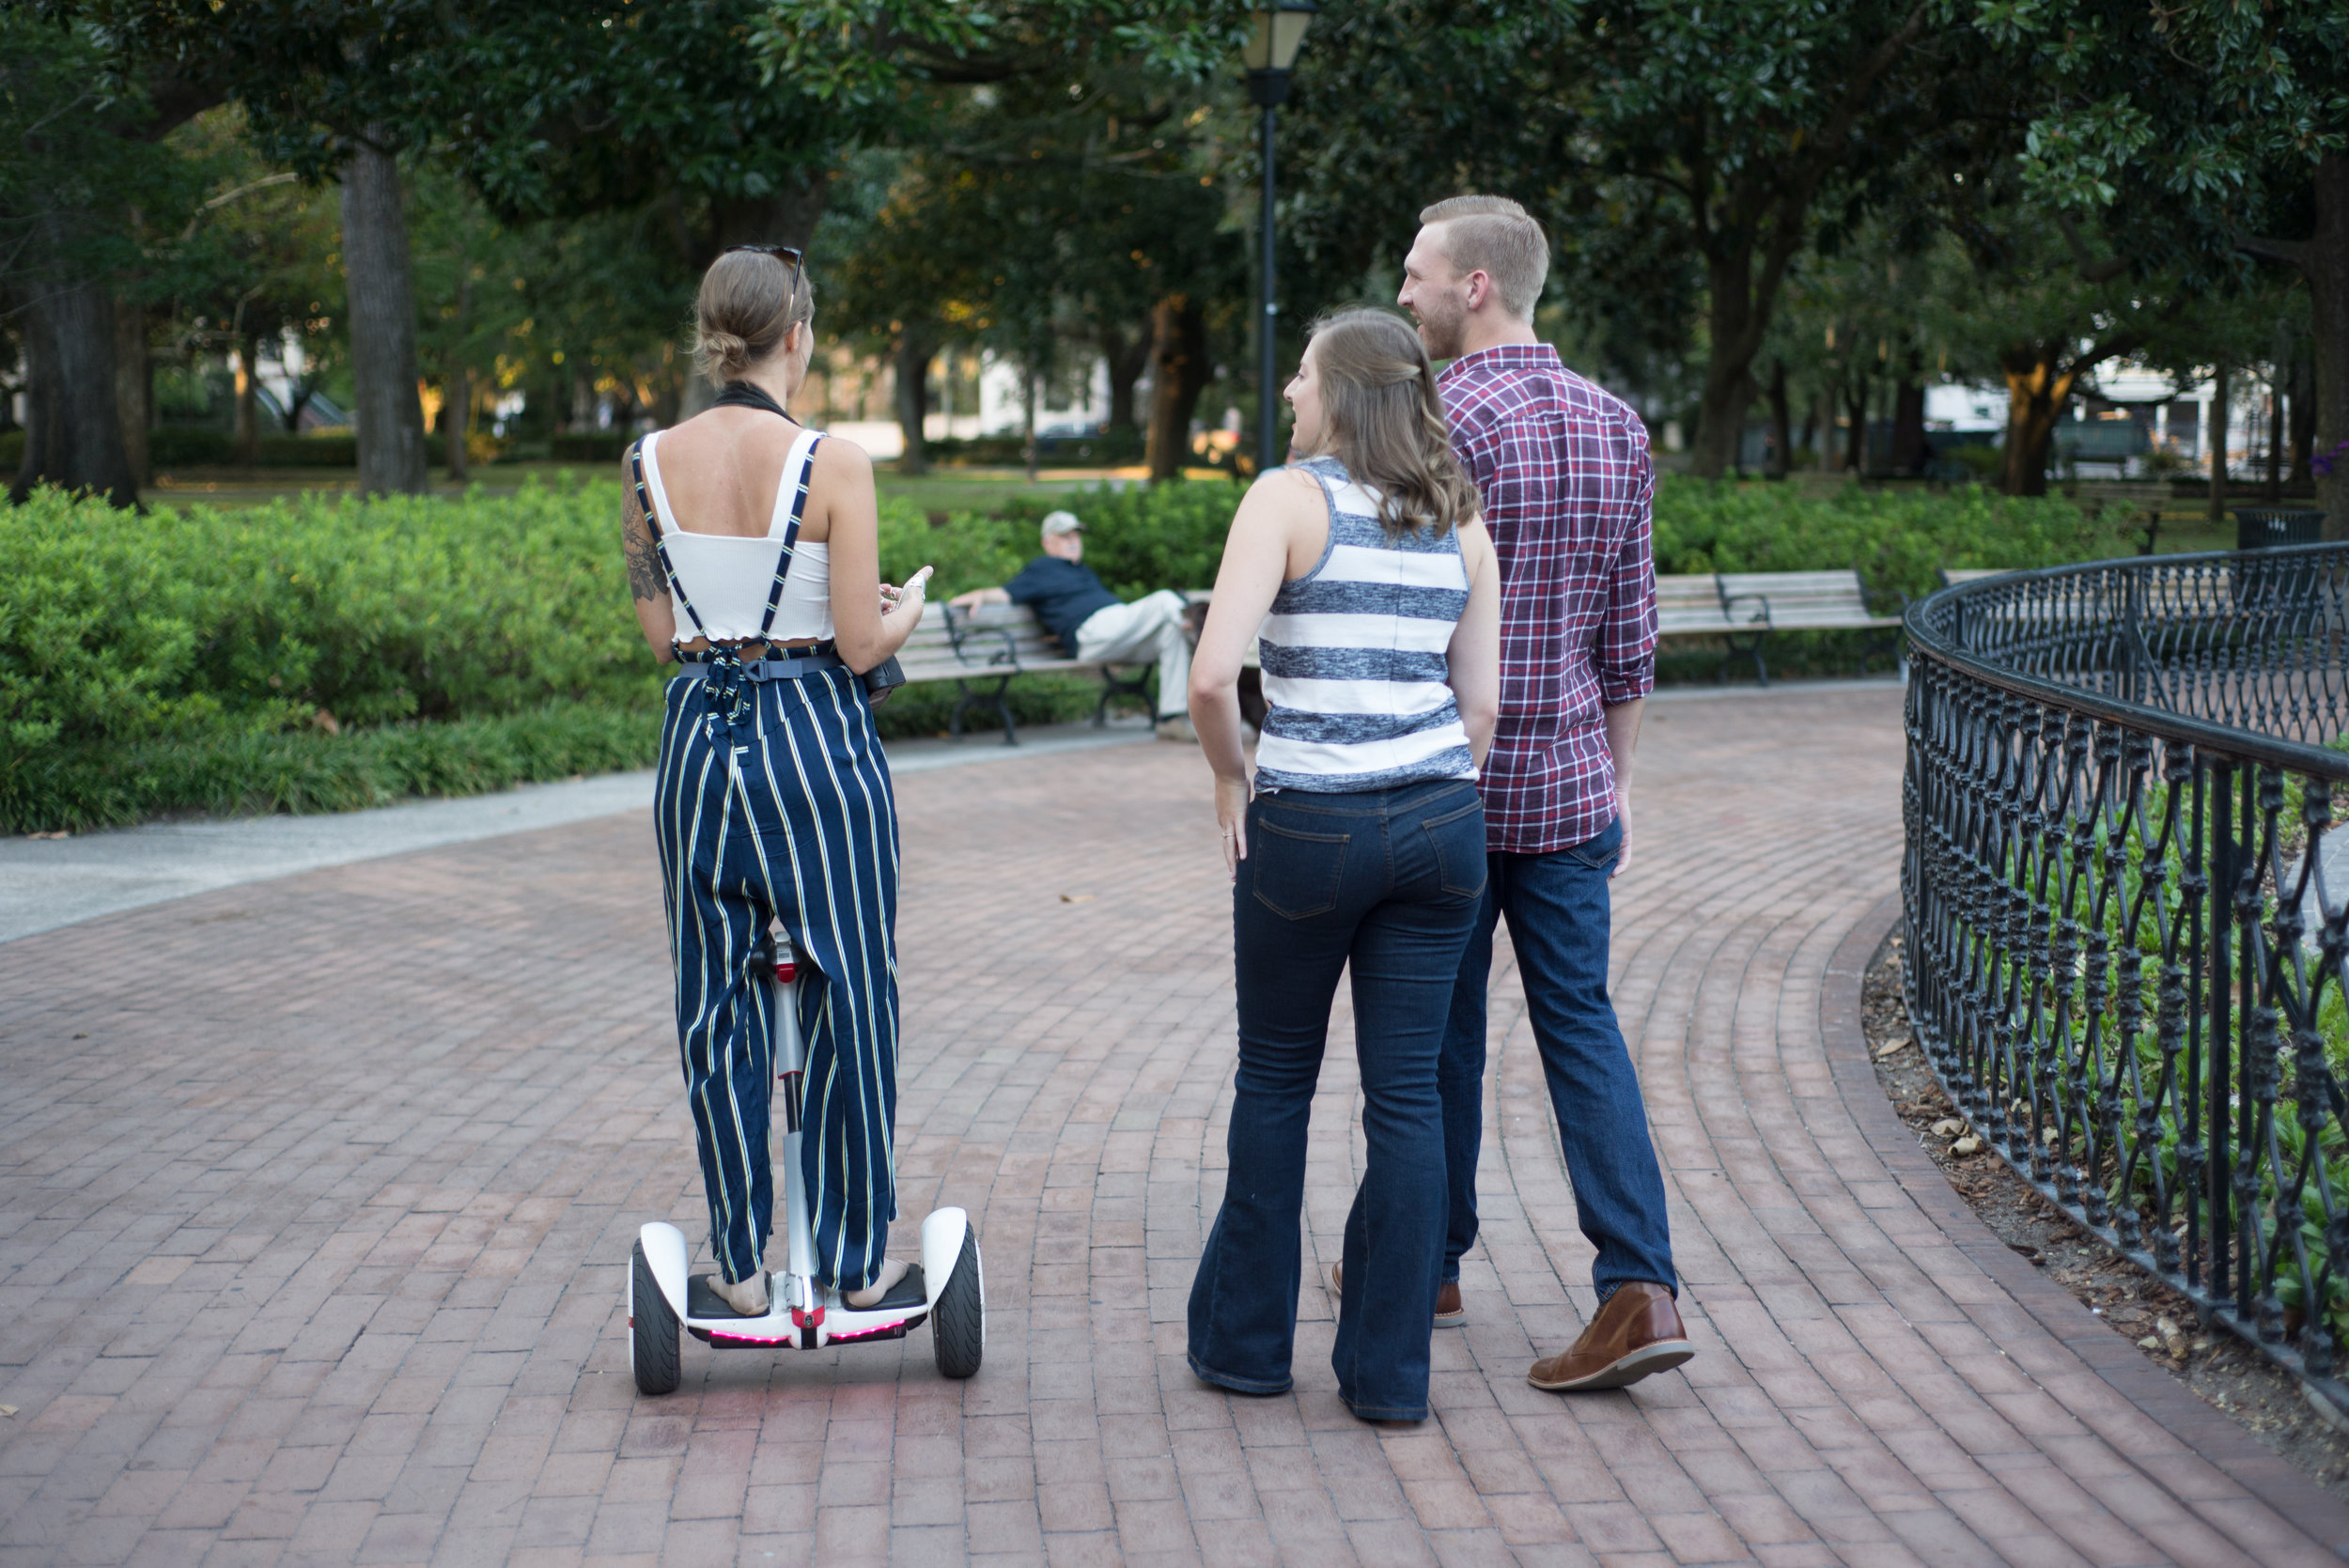 meg-hill-photo-forsyth-park-engagement-merideth-and-nicholas-october-2018 (6 of 195).jpg